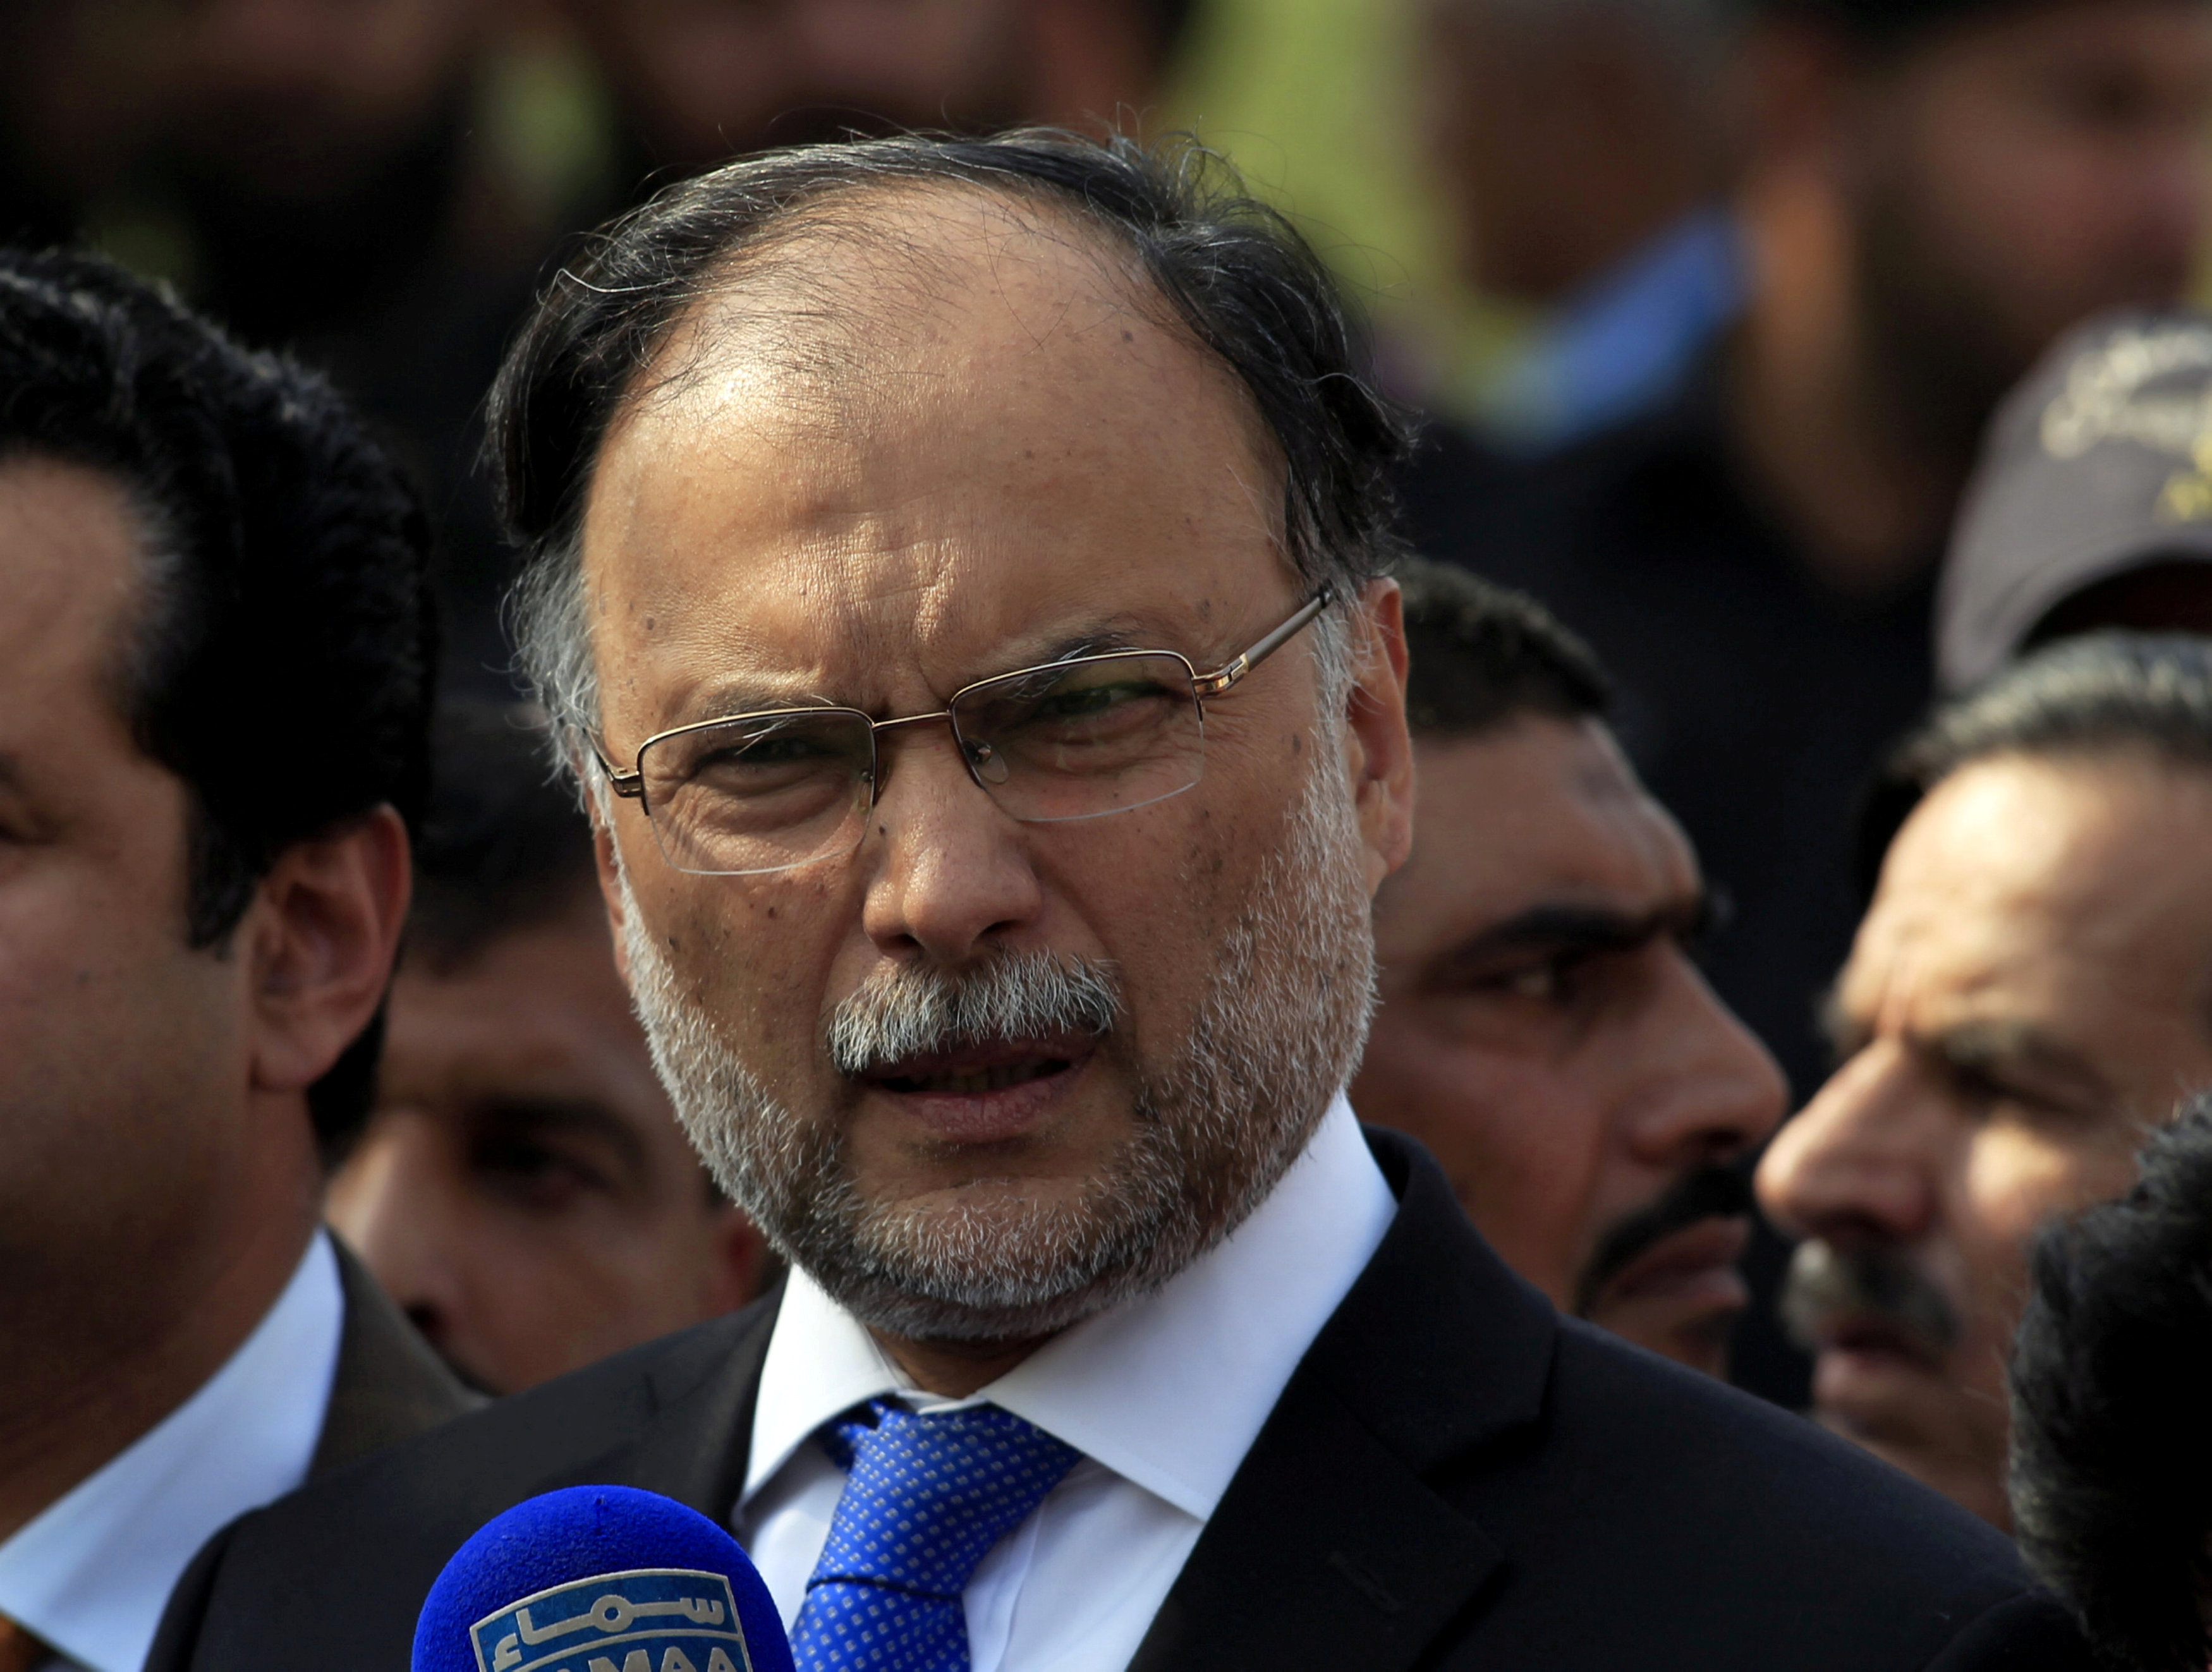 FILE PHOTO: Pakistan's Interior Minister Ahsan Iqbal speaks to media outside the accountability court in Islamabad, Pakistan October 2, 2017. REUTERS/Faisal Mahmood/File Photo